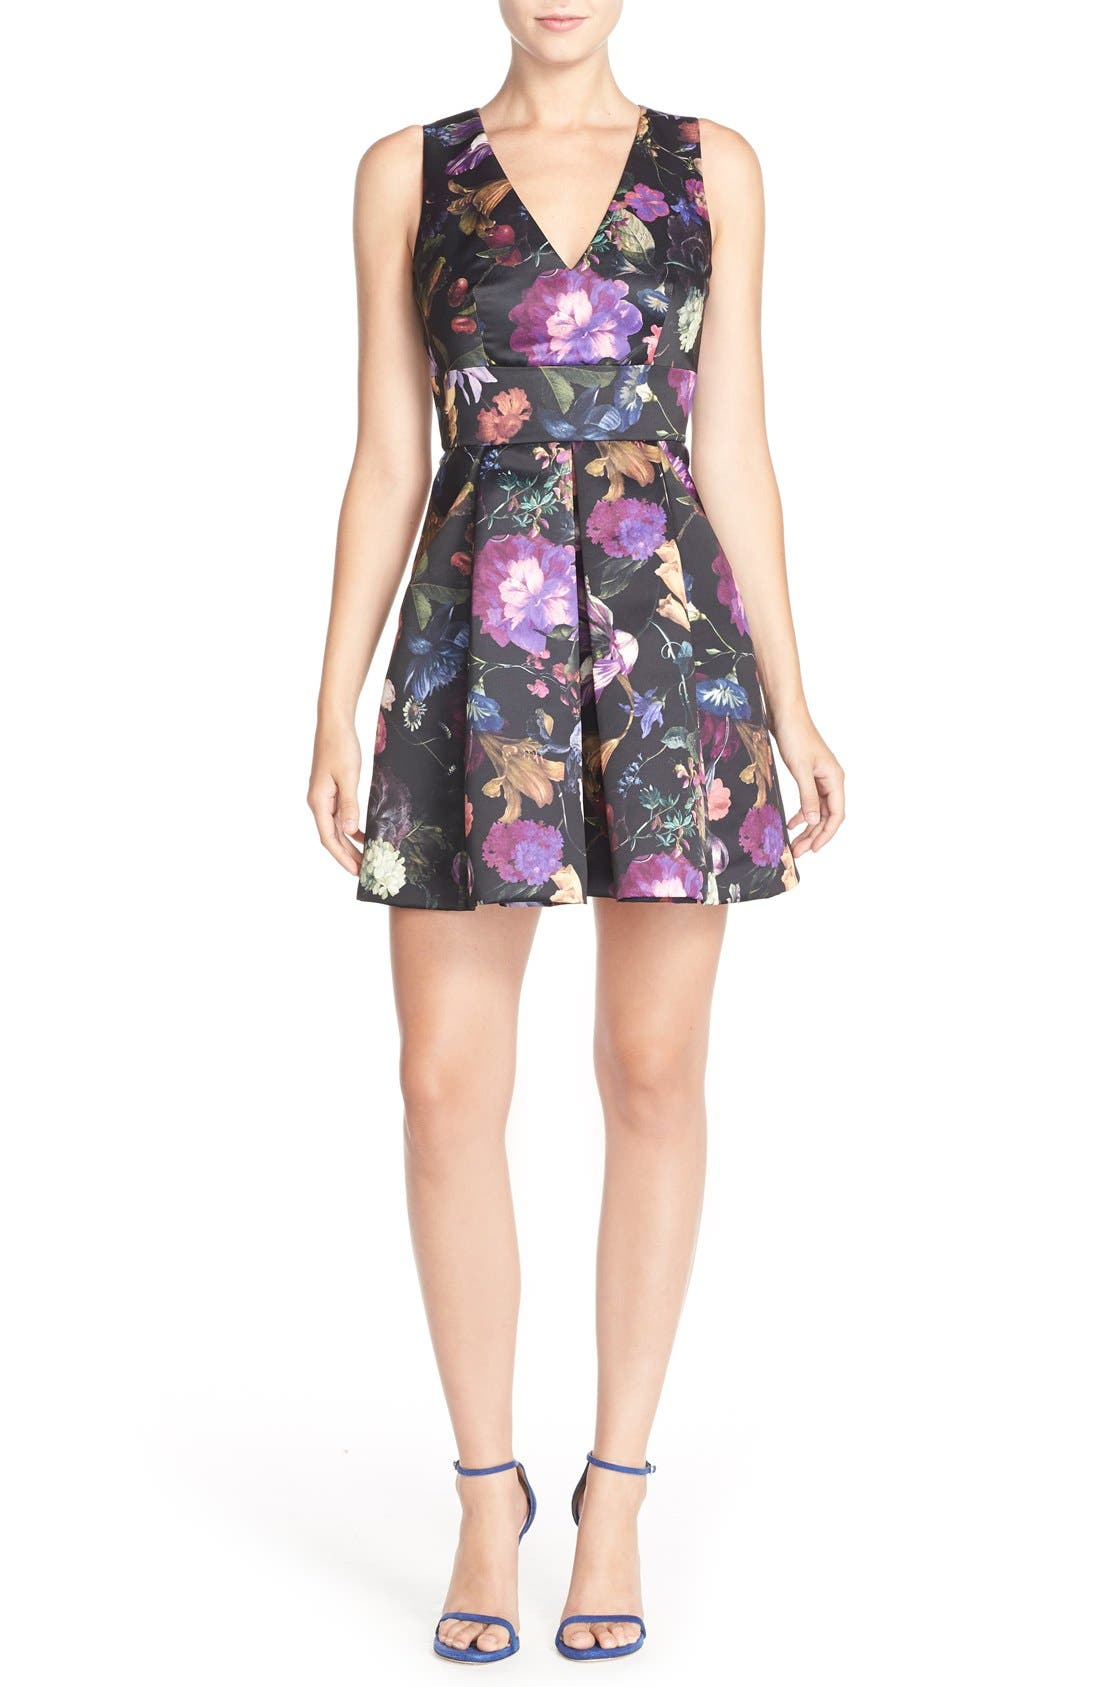 Cythia Rowley 'Winter' Floral Print Woven Fit & Flare Dress,                             Alternate thumbnail 5, color,                             009